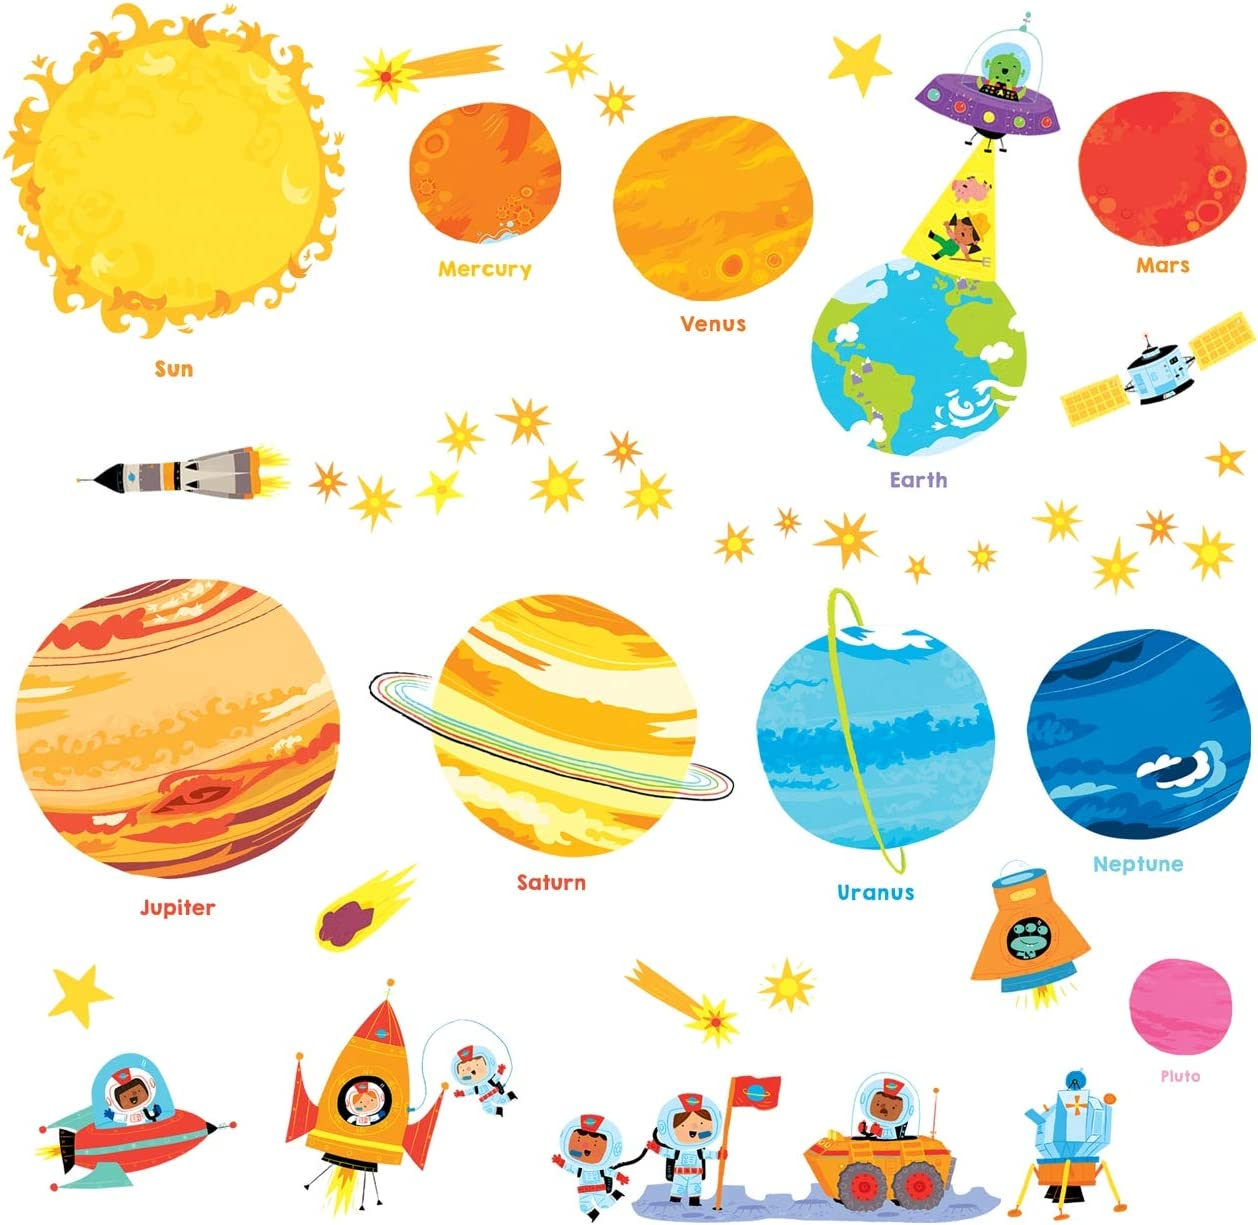 DECOWALL DW-1707N Planets and Space Kids Wall Stickers Wall Decals Peel and Stick Removable Wall Stickers for Kids Nursery Bedroom Living Room décor